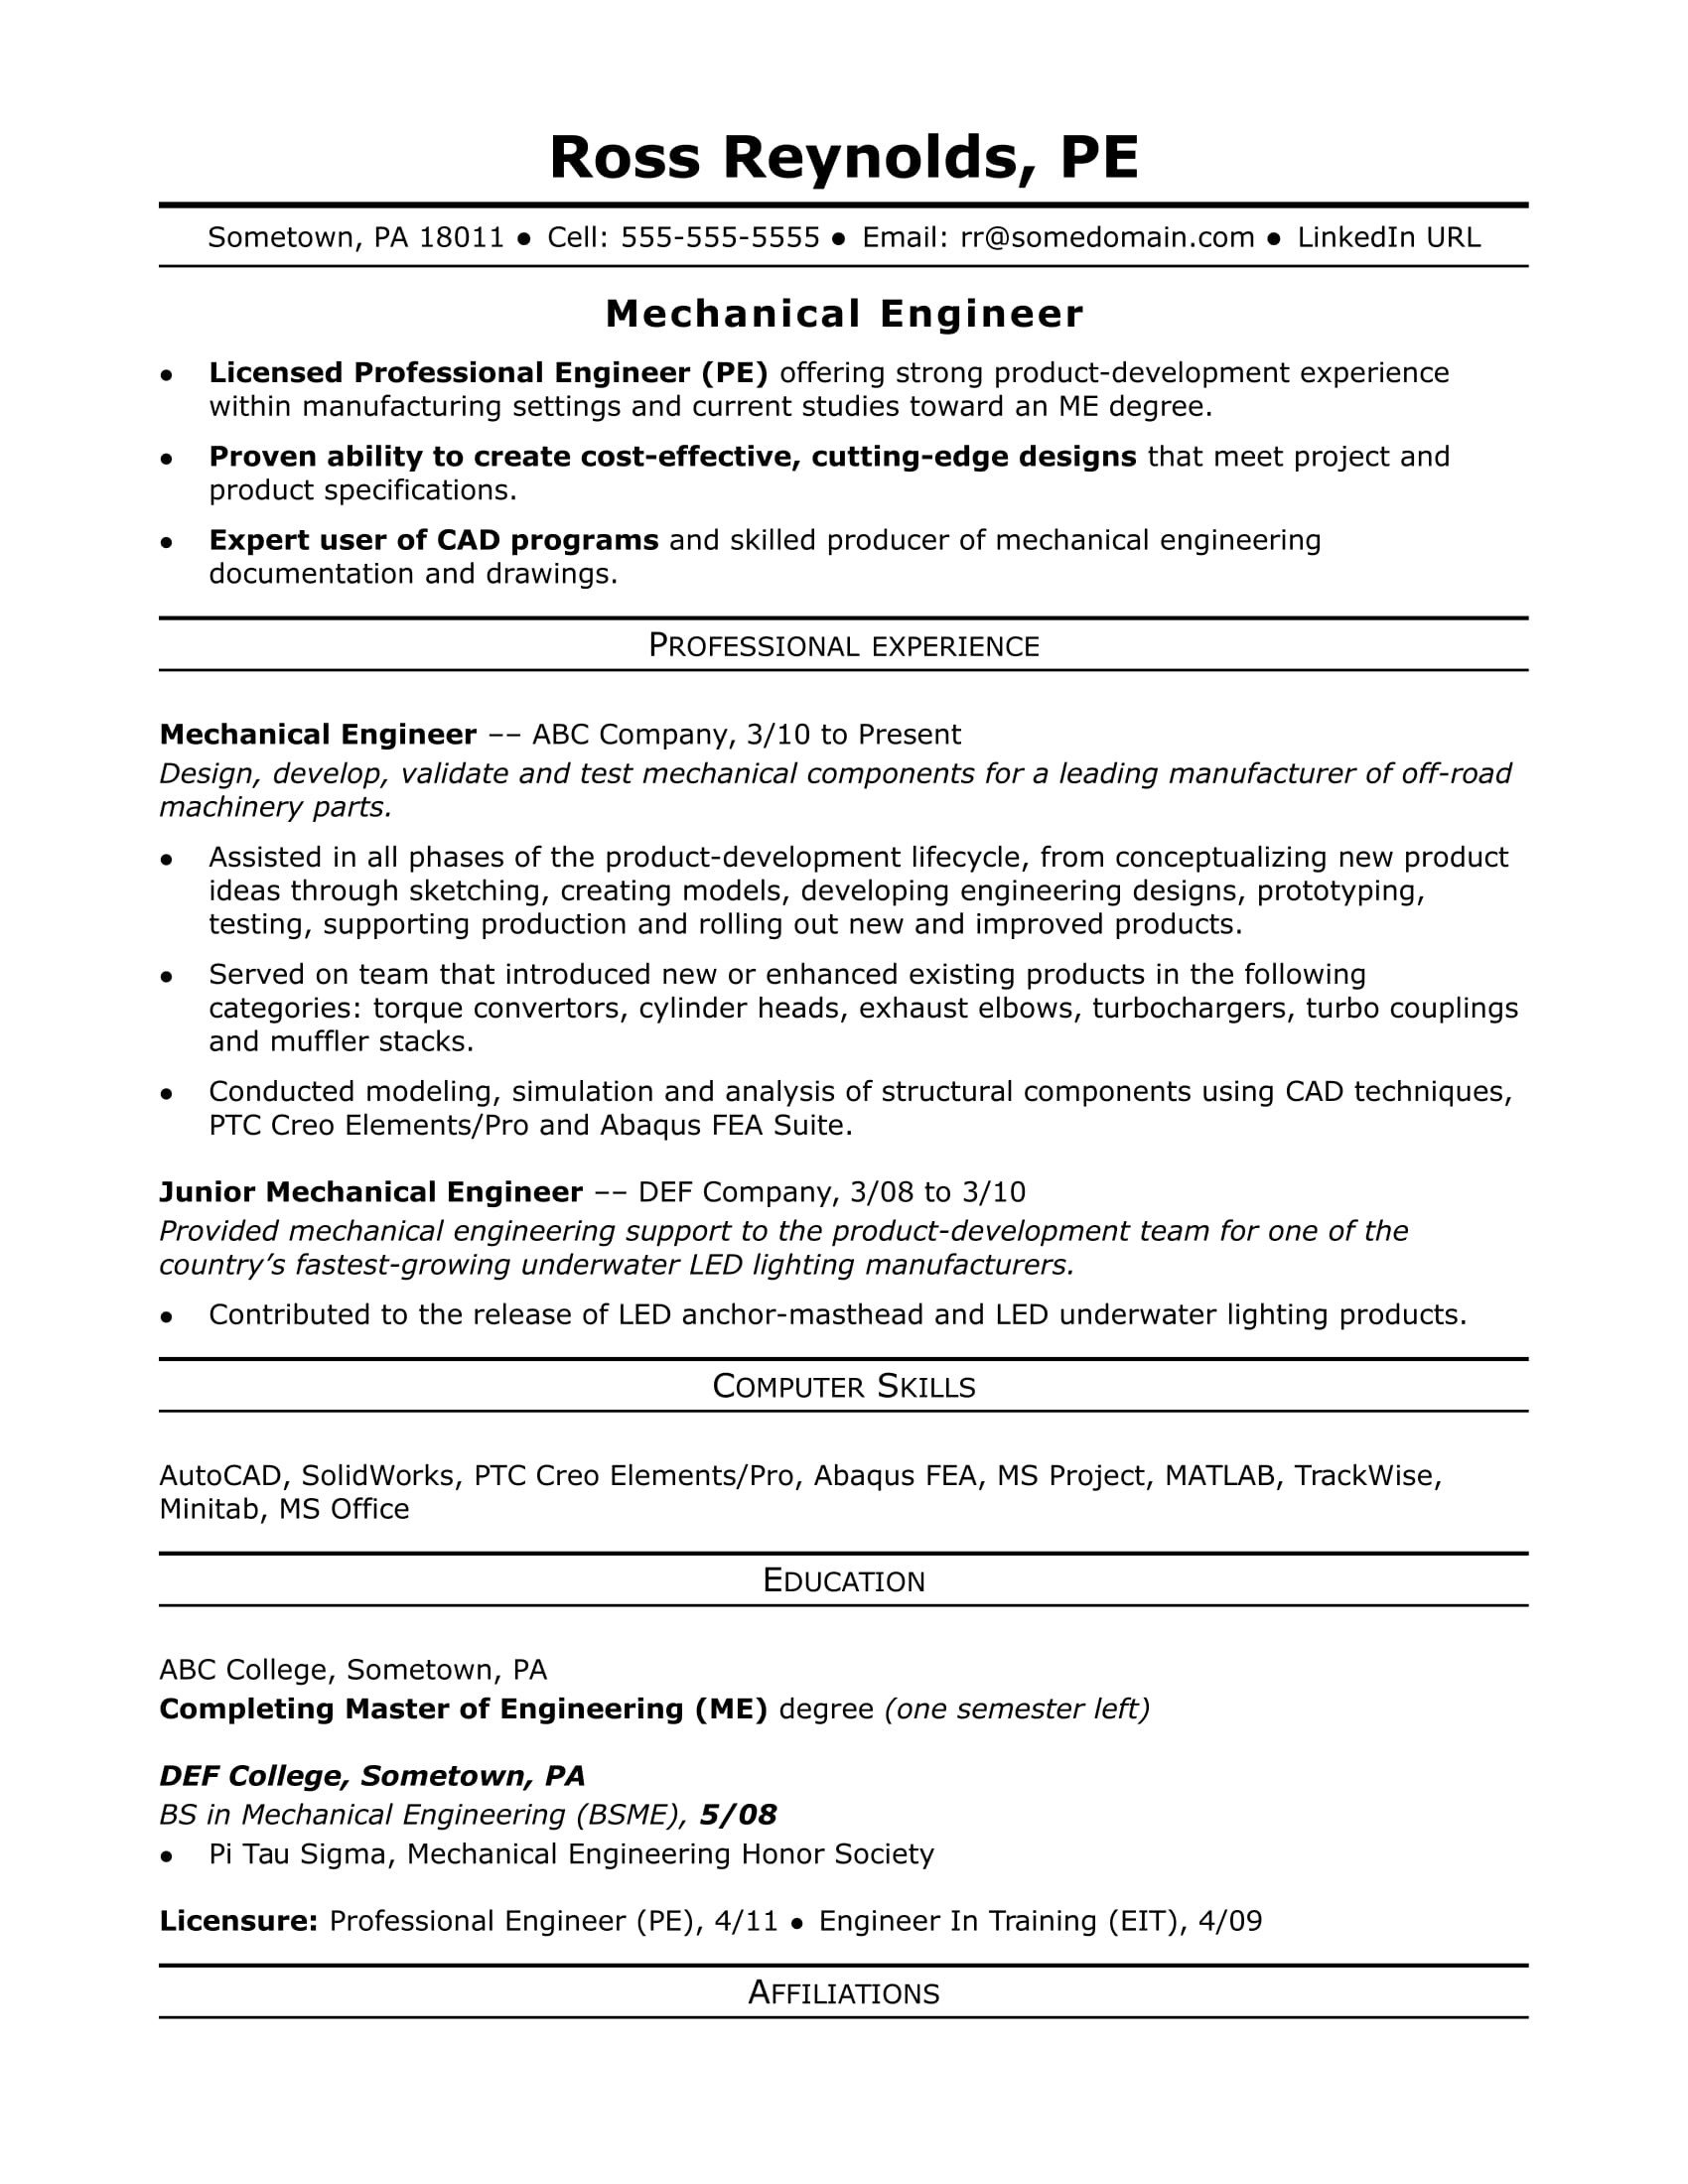 Mechanical Engineer Resume Template Sample Resume for A Midlevel Mechanical Engineer